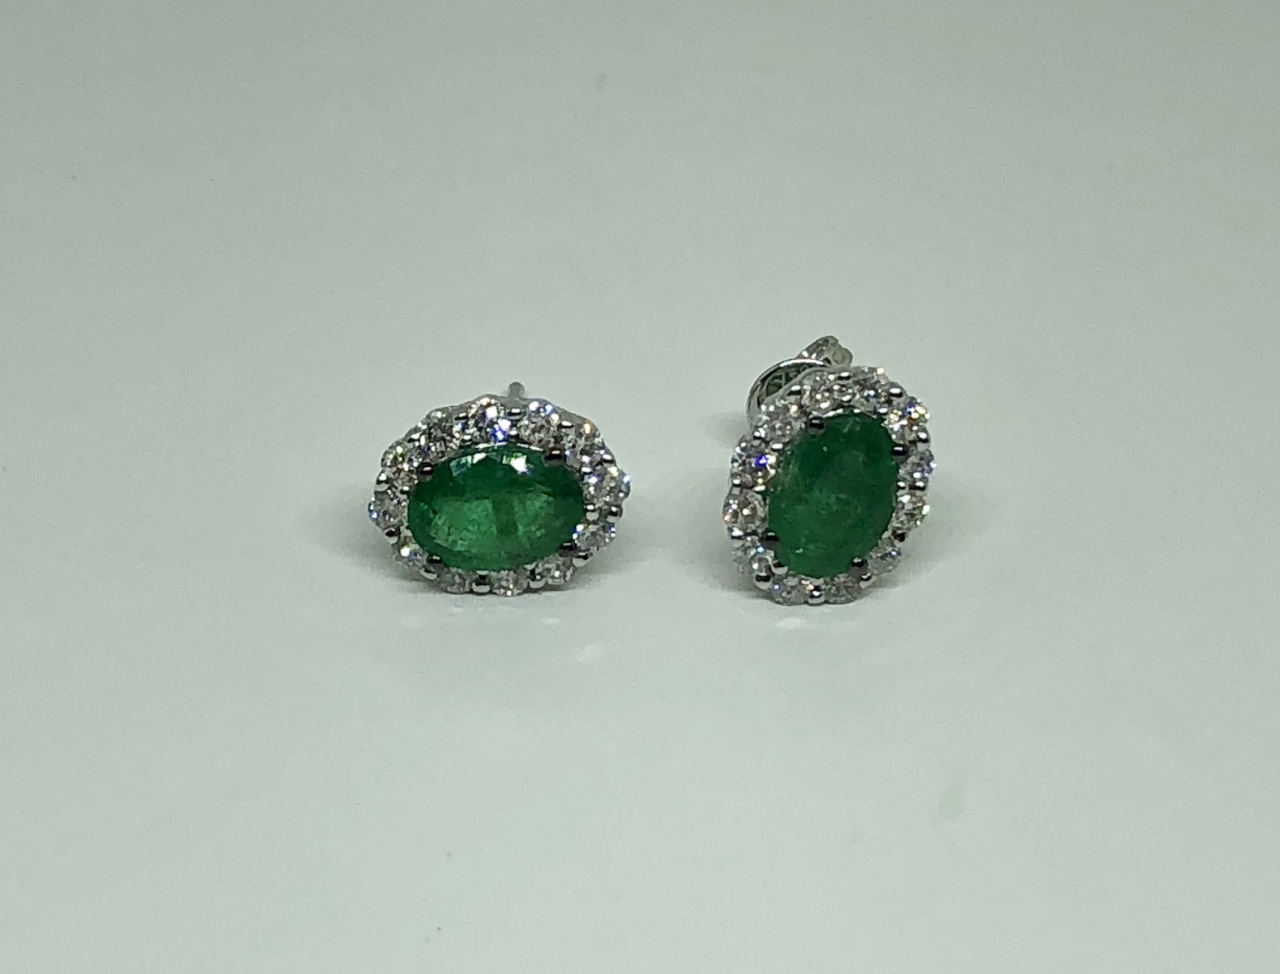 Over 1 Carat Emerald Diamond Earrings